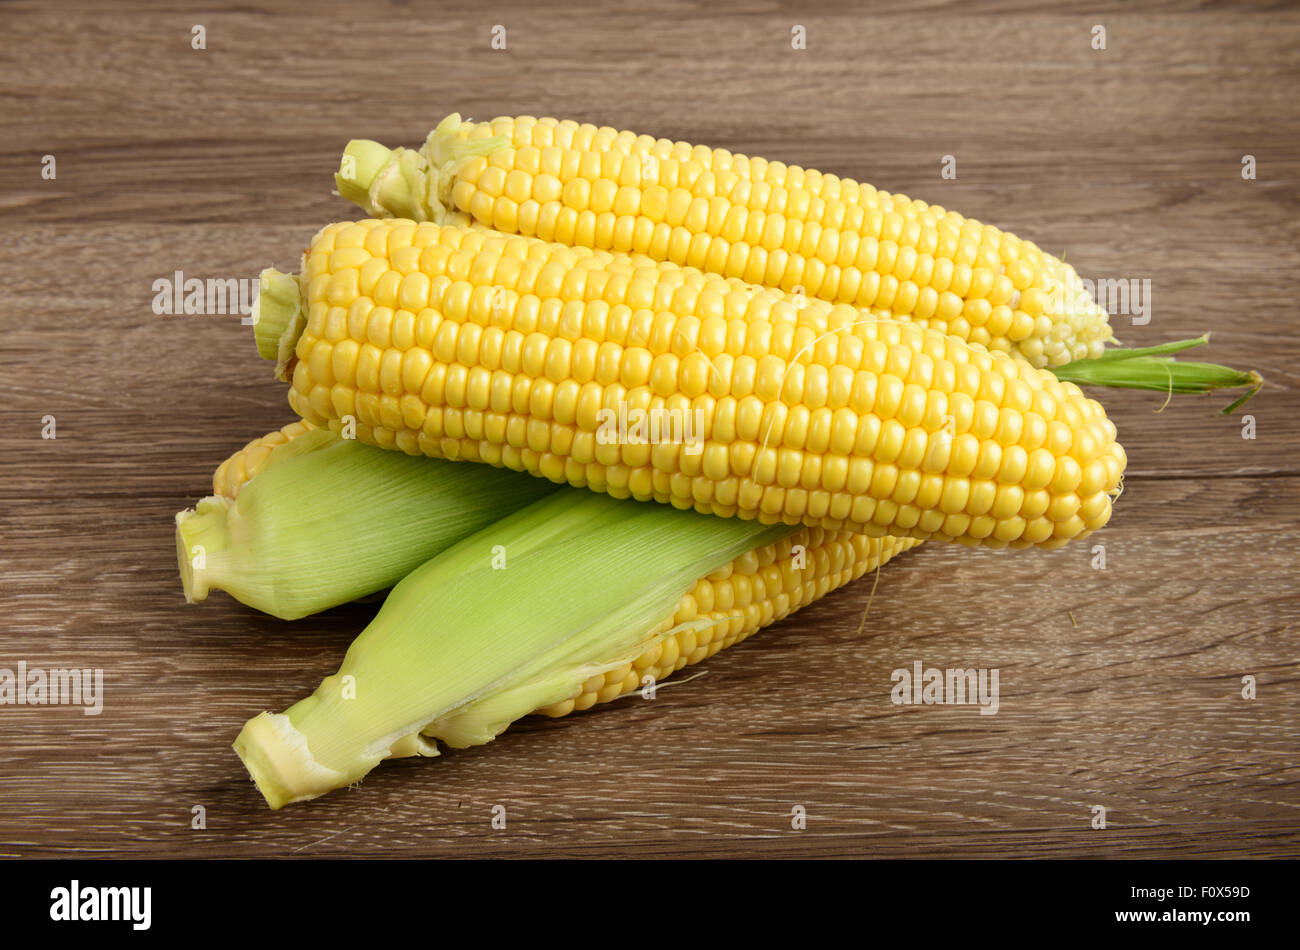 Fresh raw corn on wooden table - Stock Image